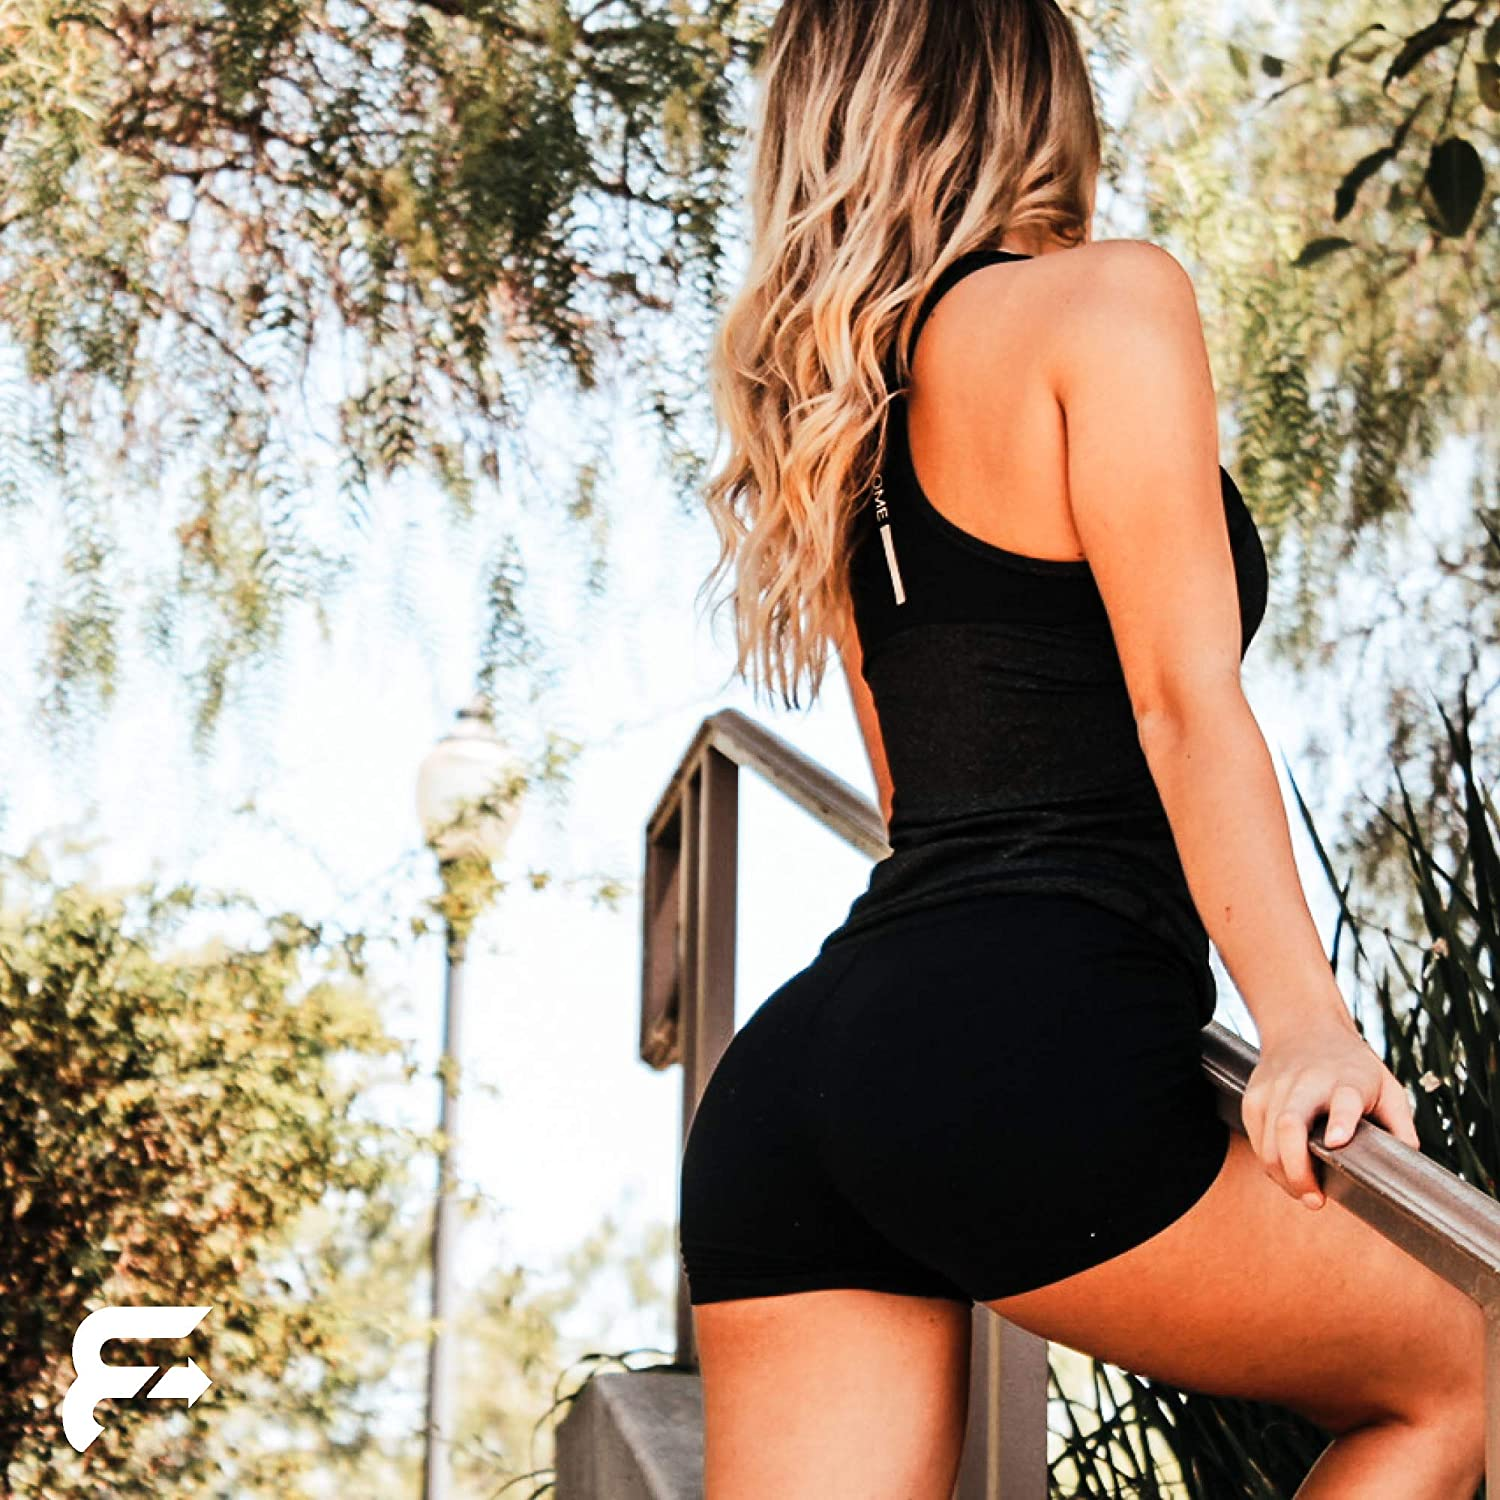 Activewear Racerback Tank Top for High Waisted Jeans//Leggings with Graphic Design by Vecome. Workout Clothes for Women